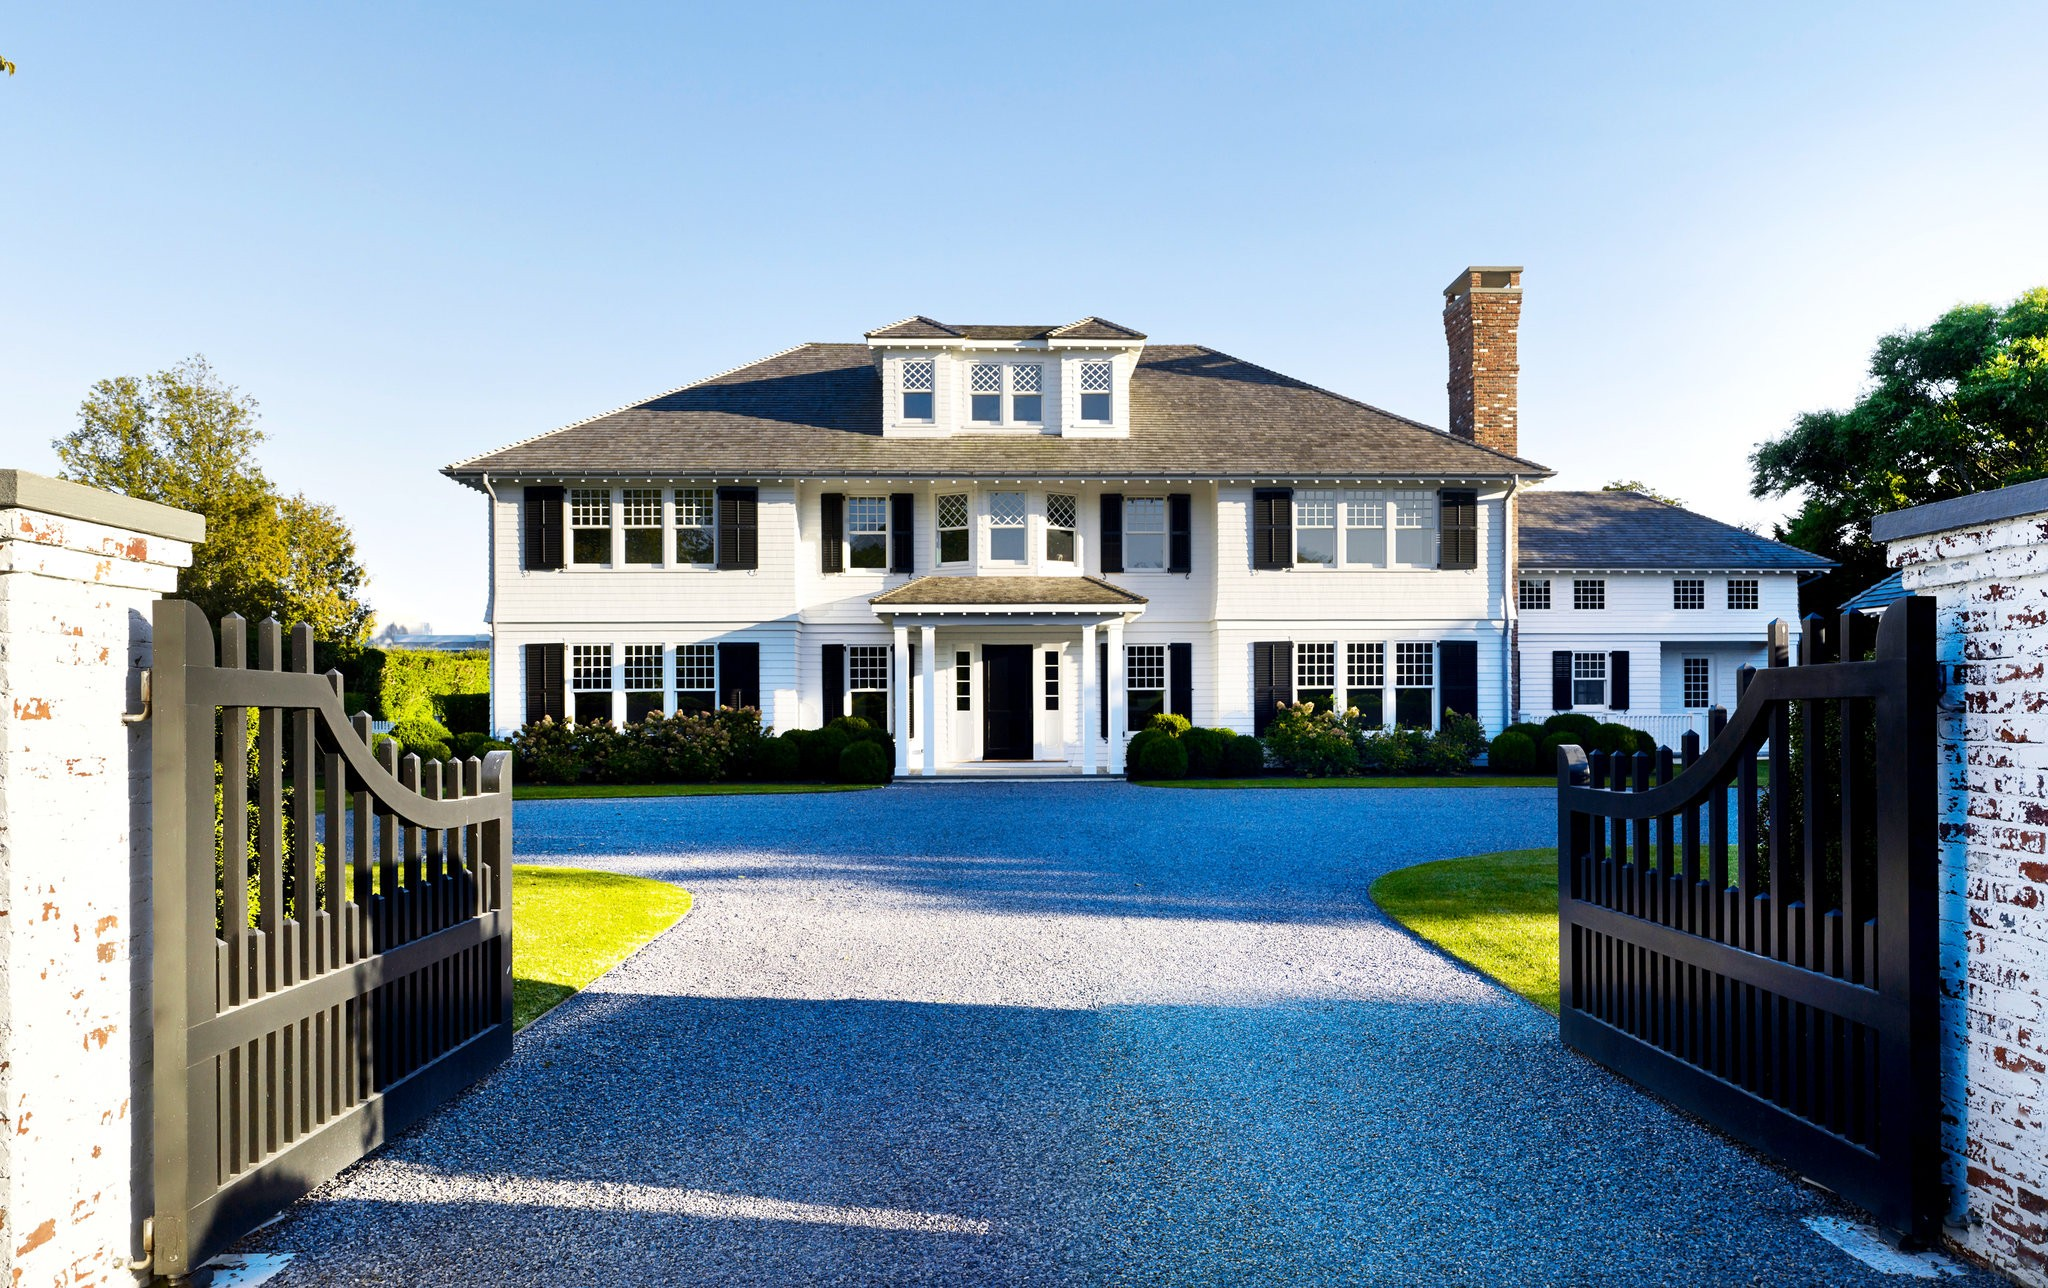 A house in East Hampton, N.Y., that Dan Scotti built after demolishing the existing house, which had been owned by the author James Brady. (PETER MURDOCK)